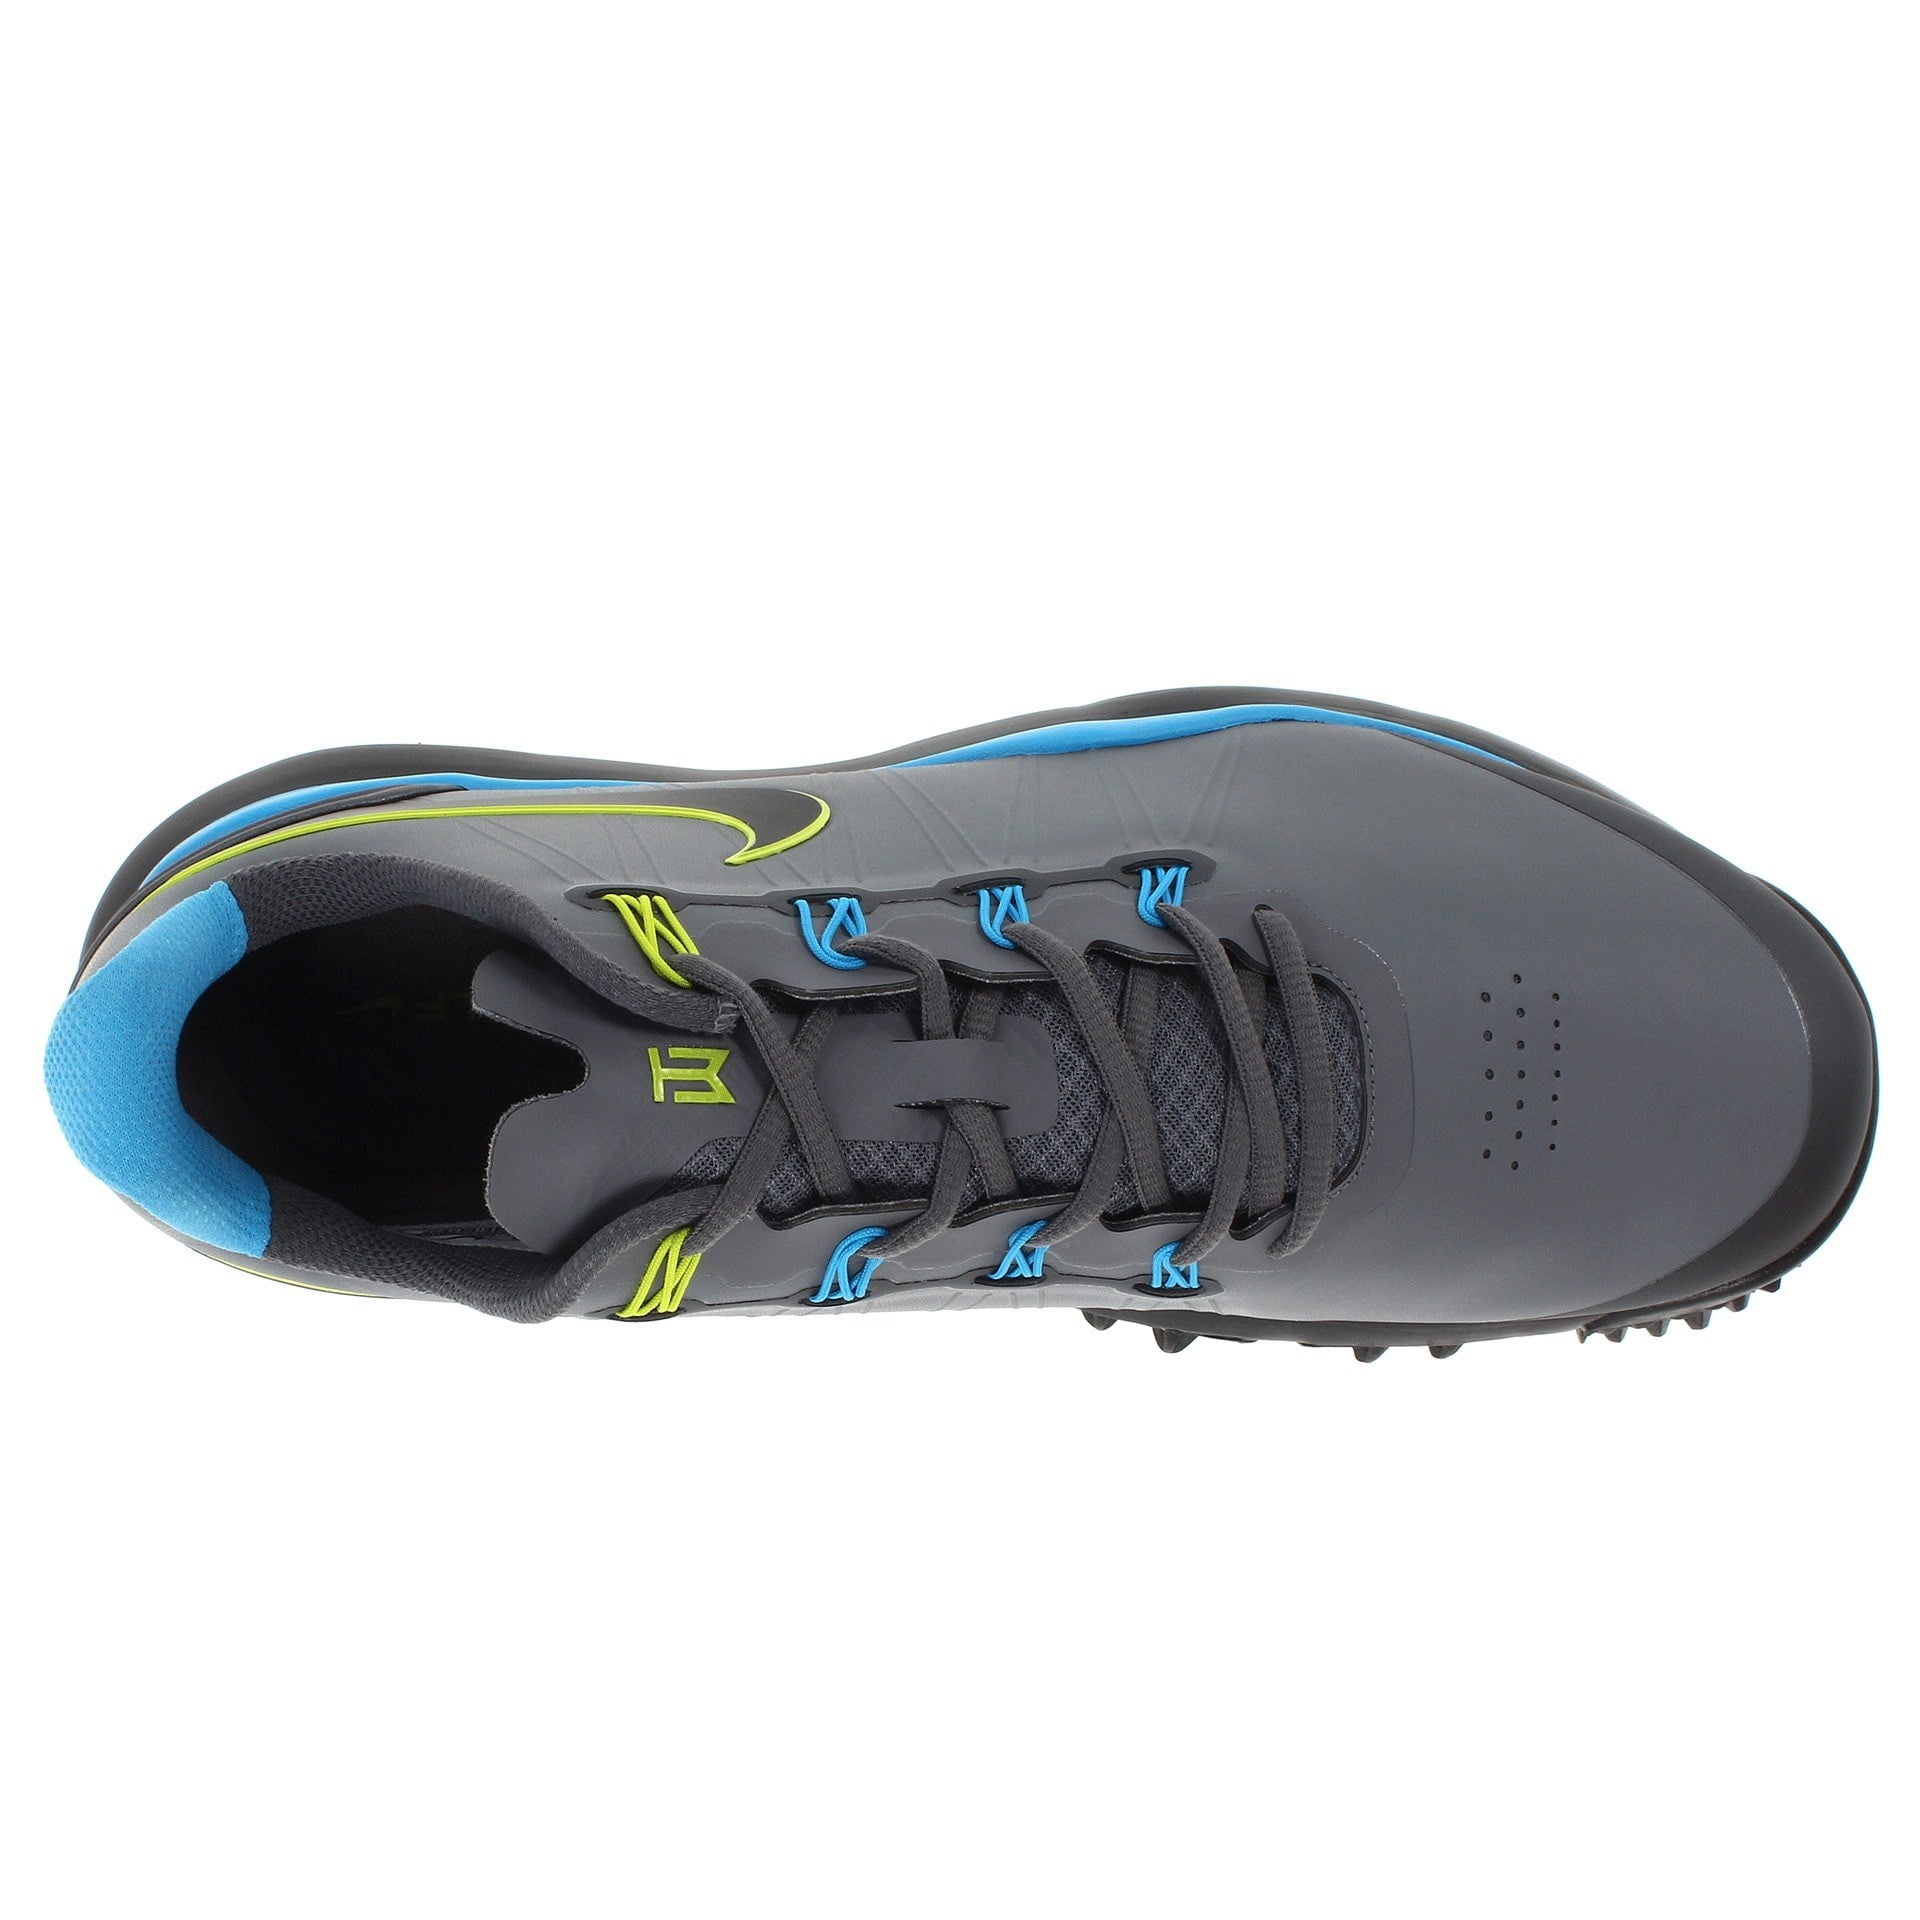 45ed31285a4 Shop Nike Men s TW 14 Cool Grey Vivid Blue Met. Dark Grey Golf Shoes  599416-002 - Free Shipping Today - Overstock - 19748351